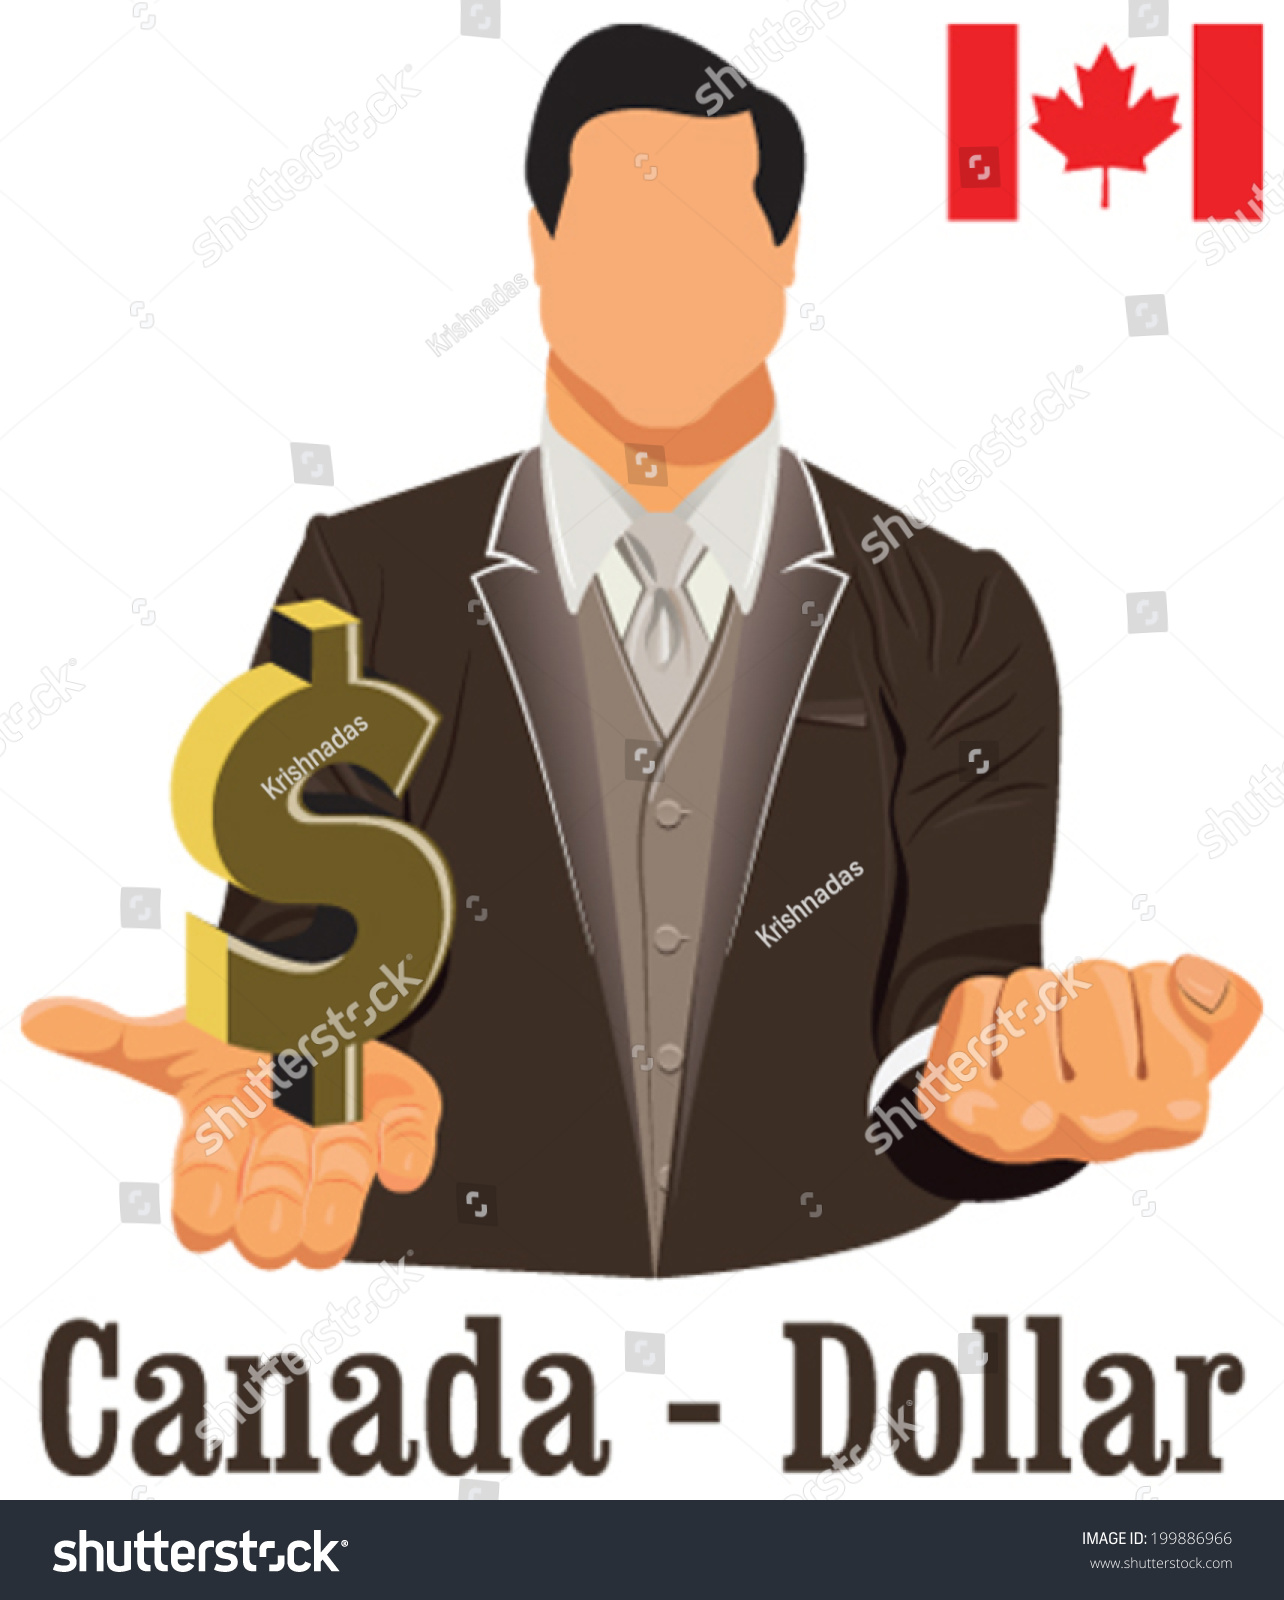 Canada National Currency Canadian Dollar Symbol Stock Vector